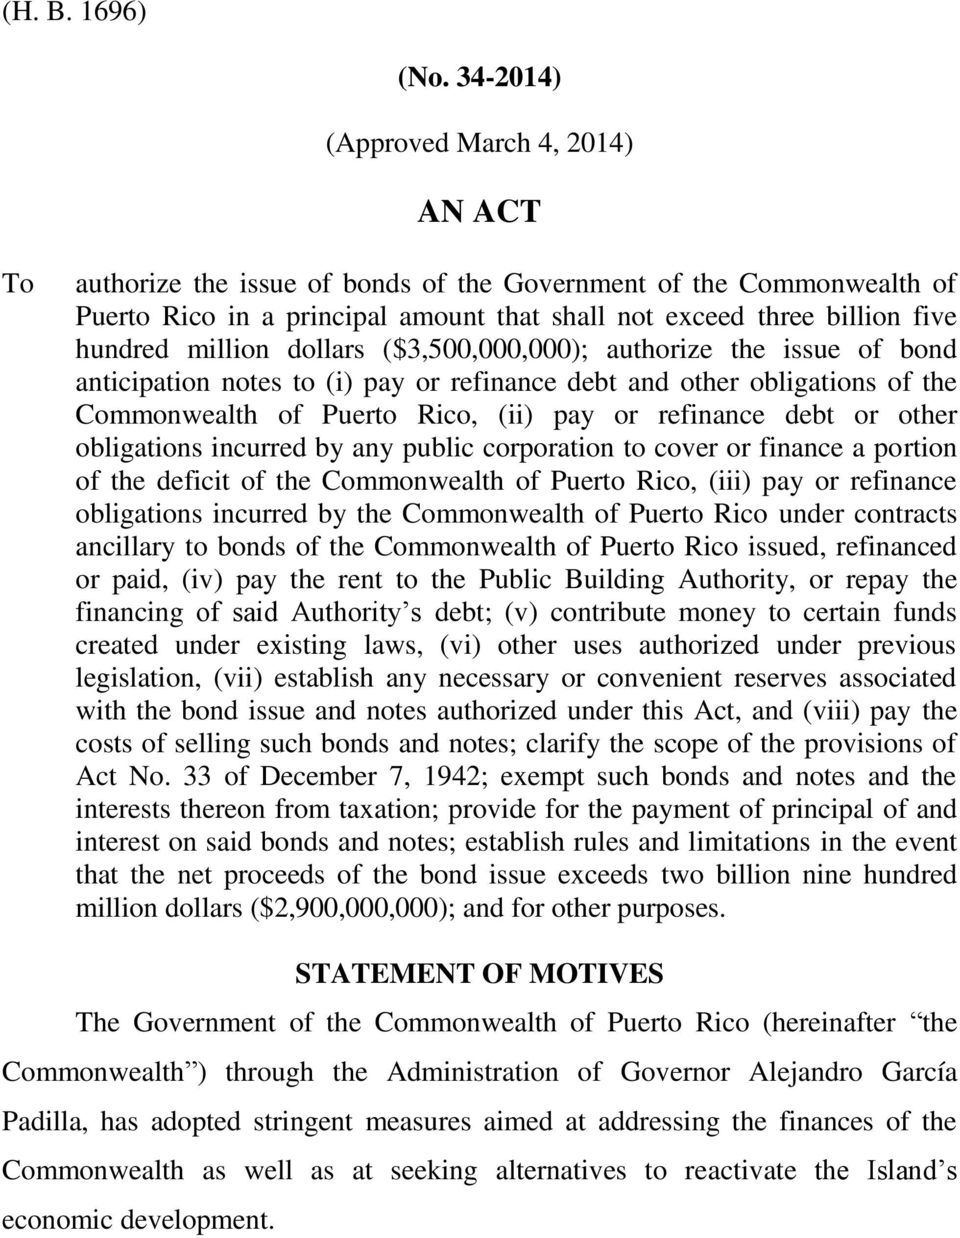 million dollars ($3,500,000,000); authorize the issue of bond anticipation notes to (i) pay or refinance debt and other obligations of the Commonwealth of Puerto Rico, (ii) pay or refinance debt or